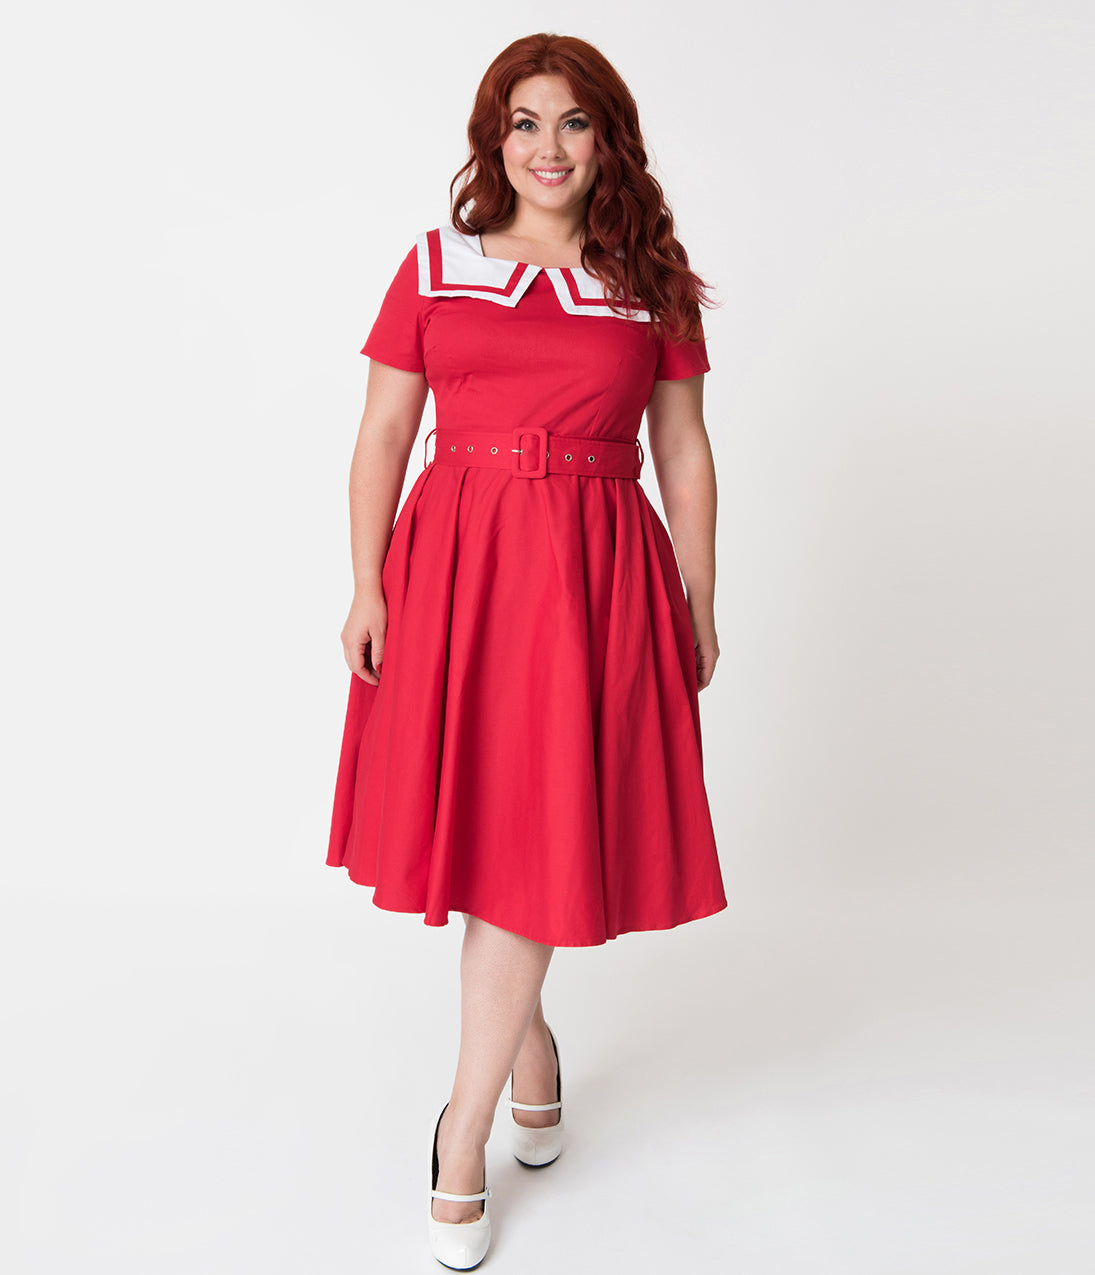 Pin Up Dresses | Pin Up Clothing Plus Size Retro Red Sailor Collar Short Sleeve Swing Dress $68.00 AT vintagedancer.com